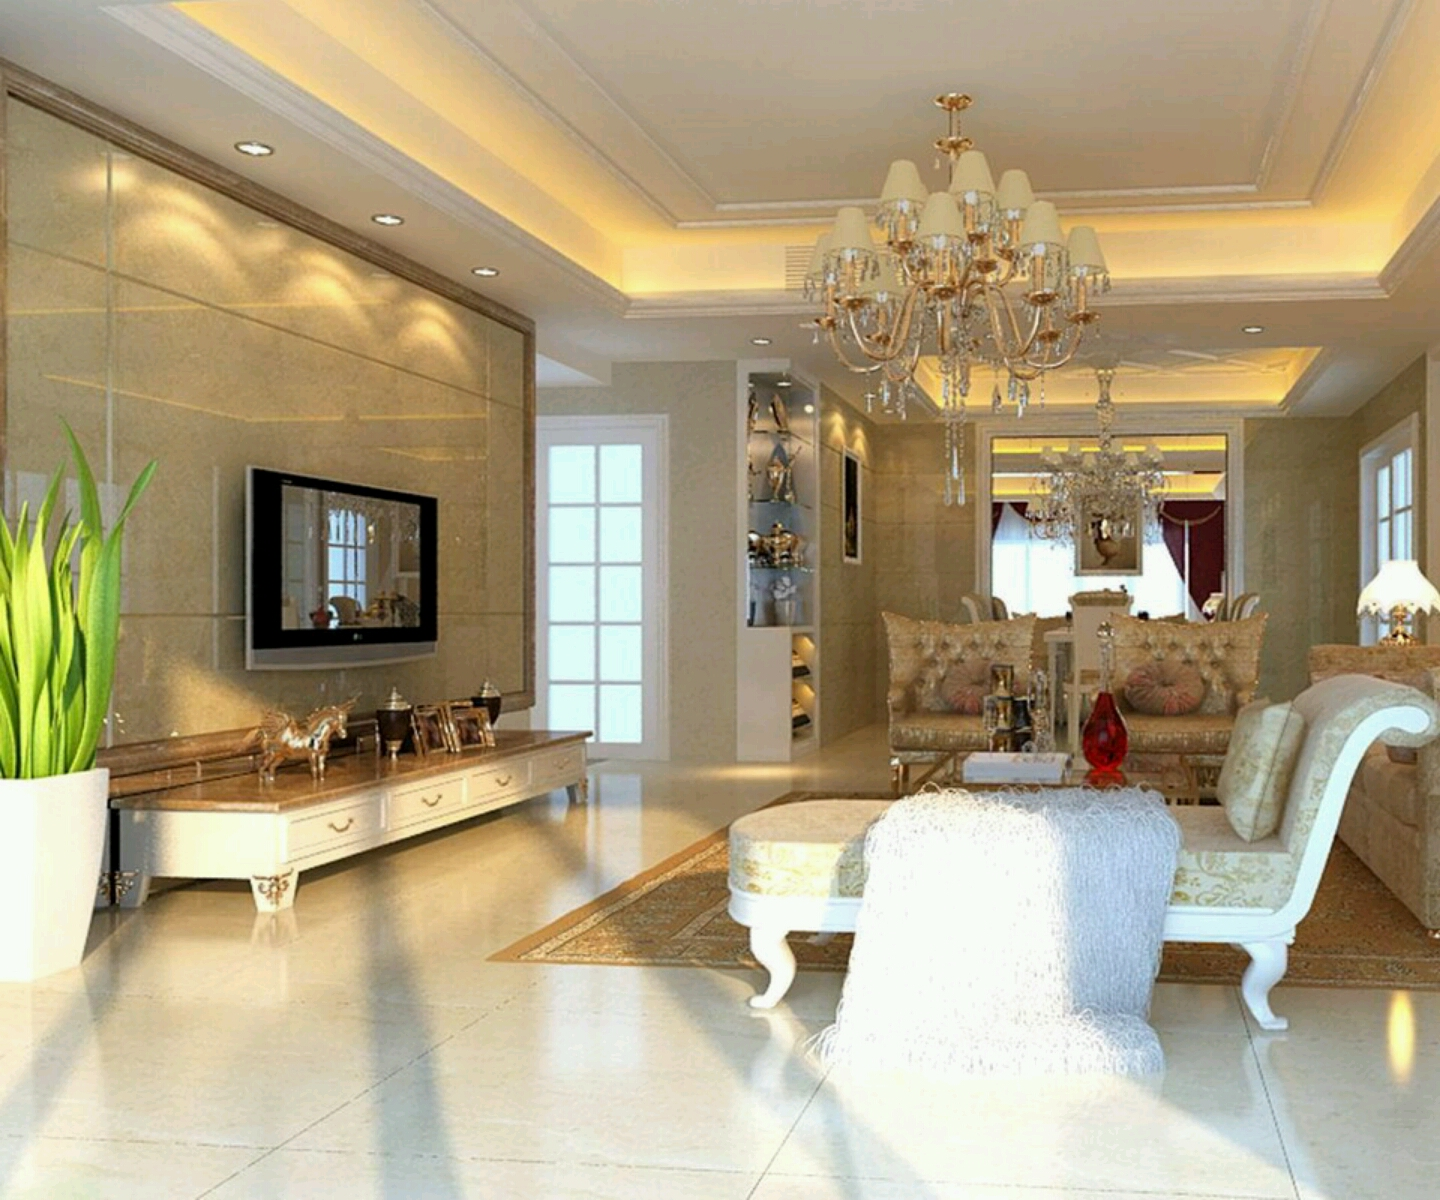 new home designs latest luxury homes interior decoration living room interior design rendering download 3d house